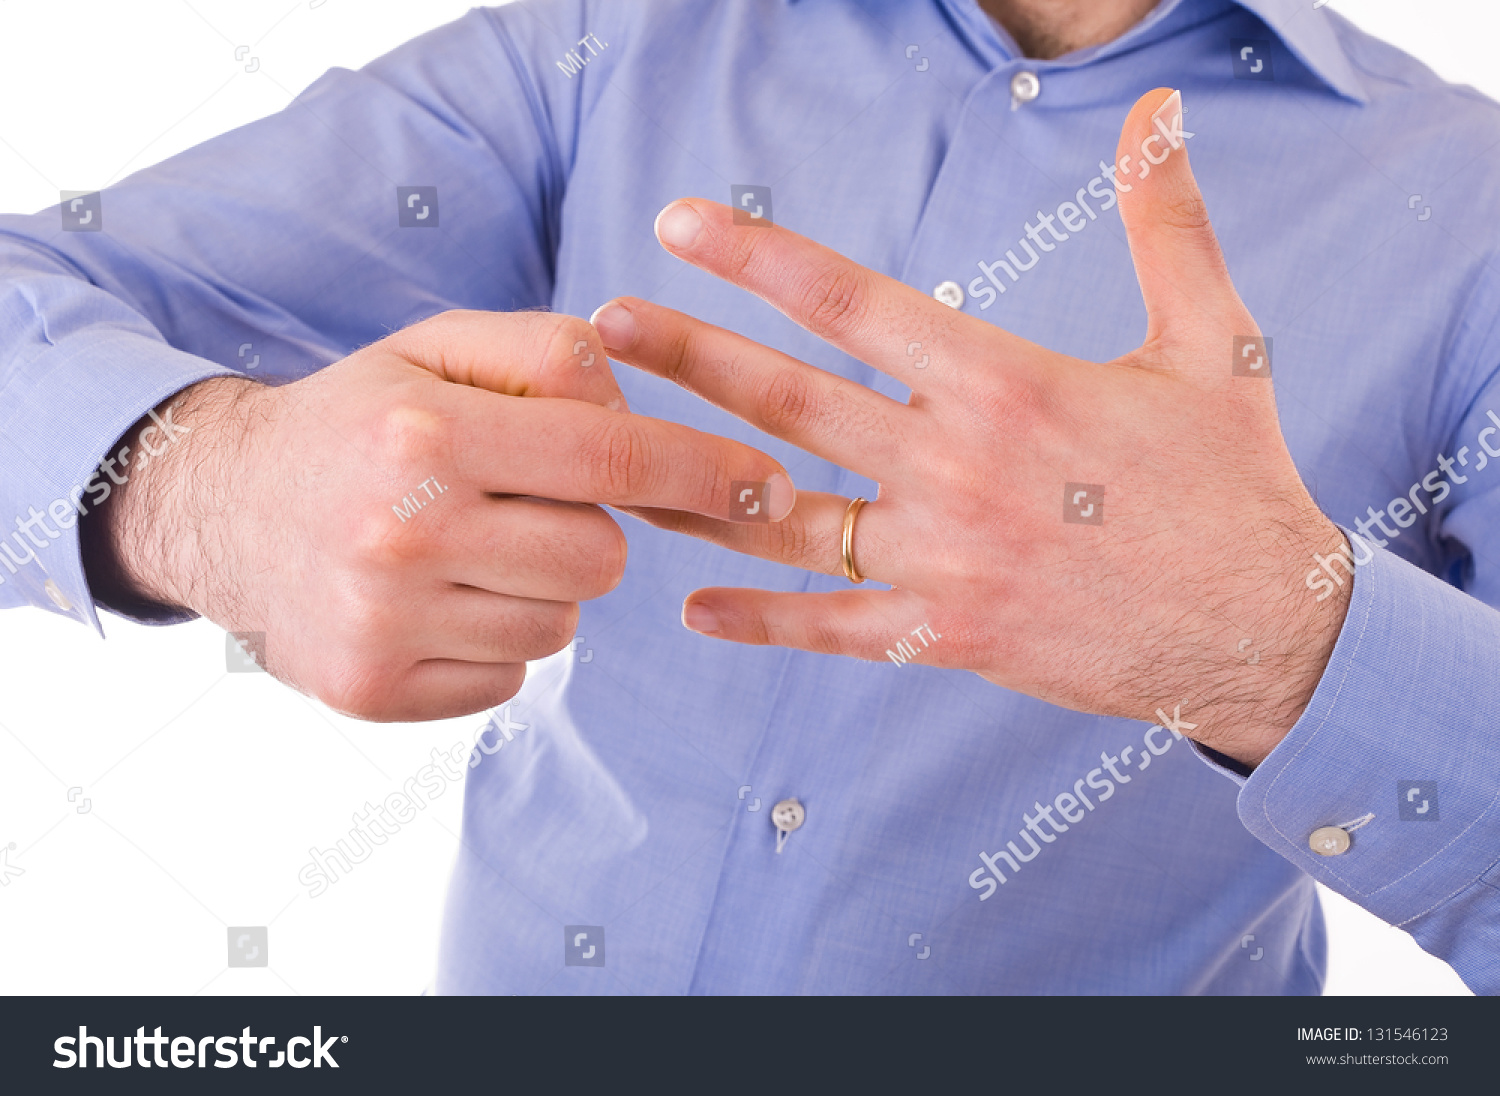 Young Man Indicating Wedding Ring Stock Photo (Royalty Free ...